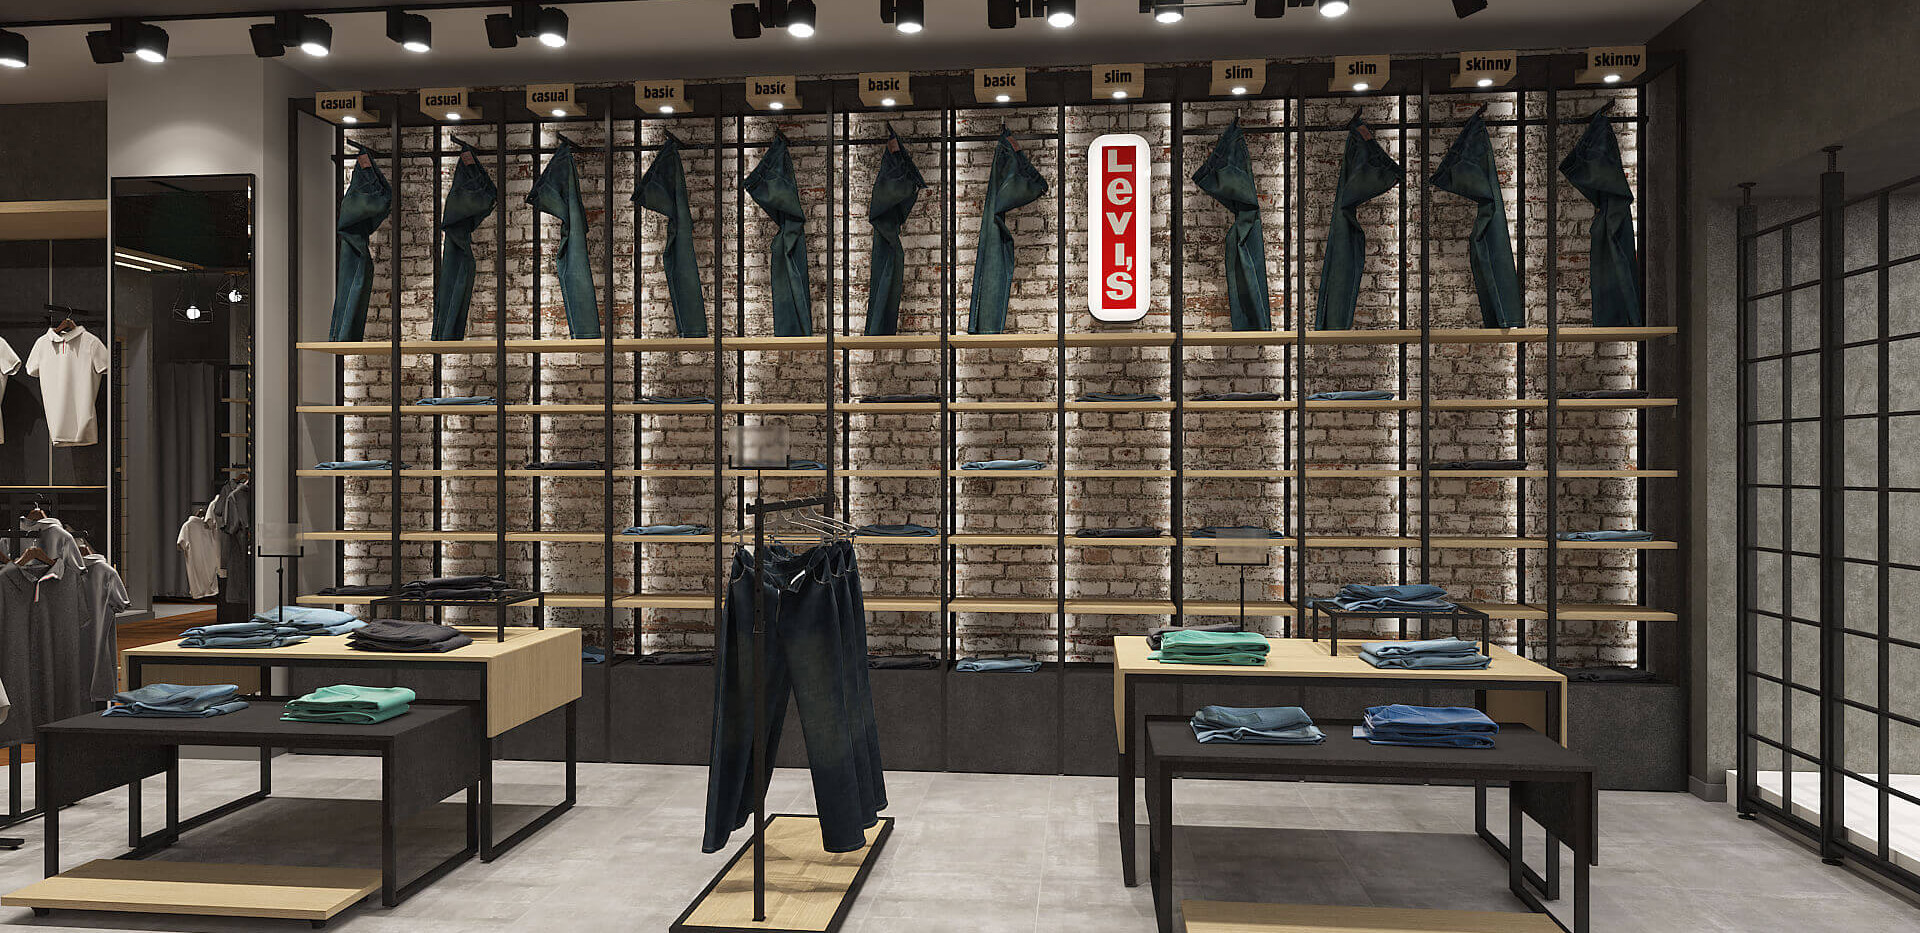 Dequell - Denim Store Shop Design-4.jpg